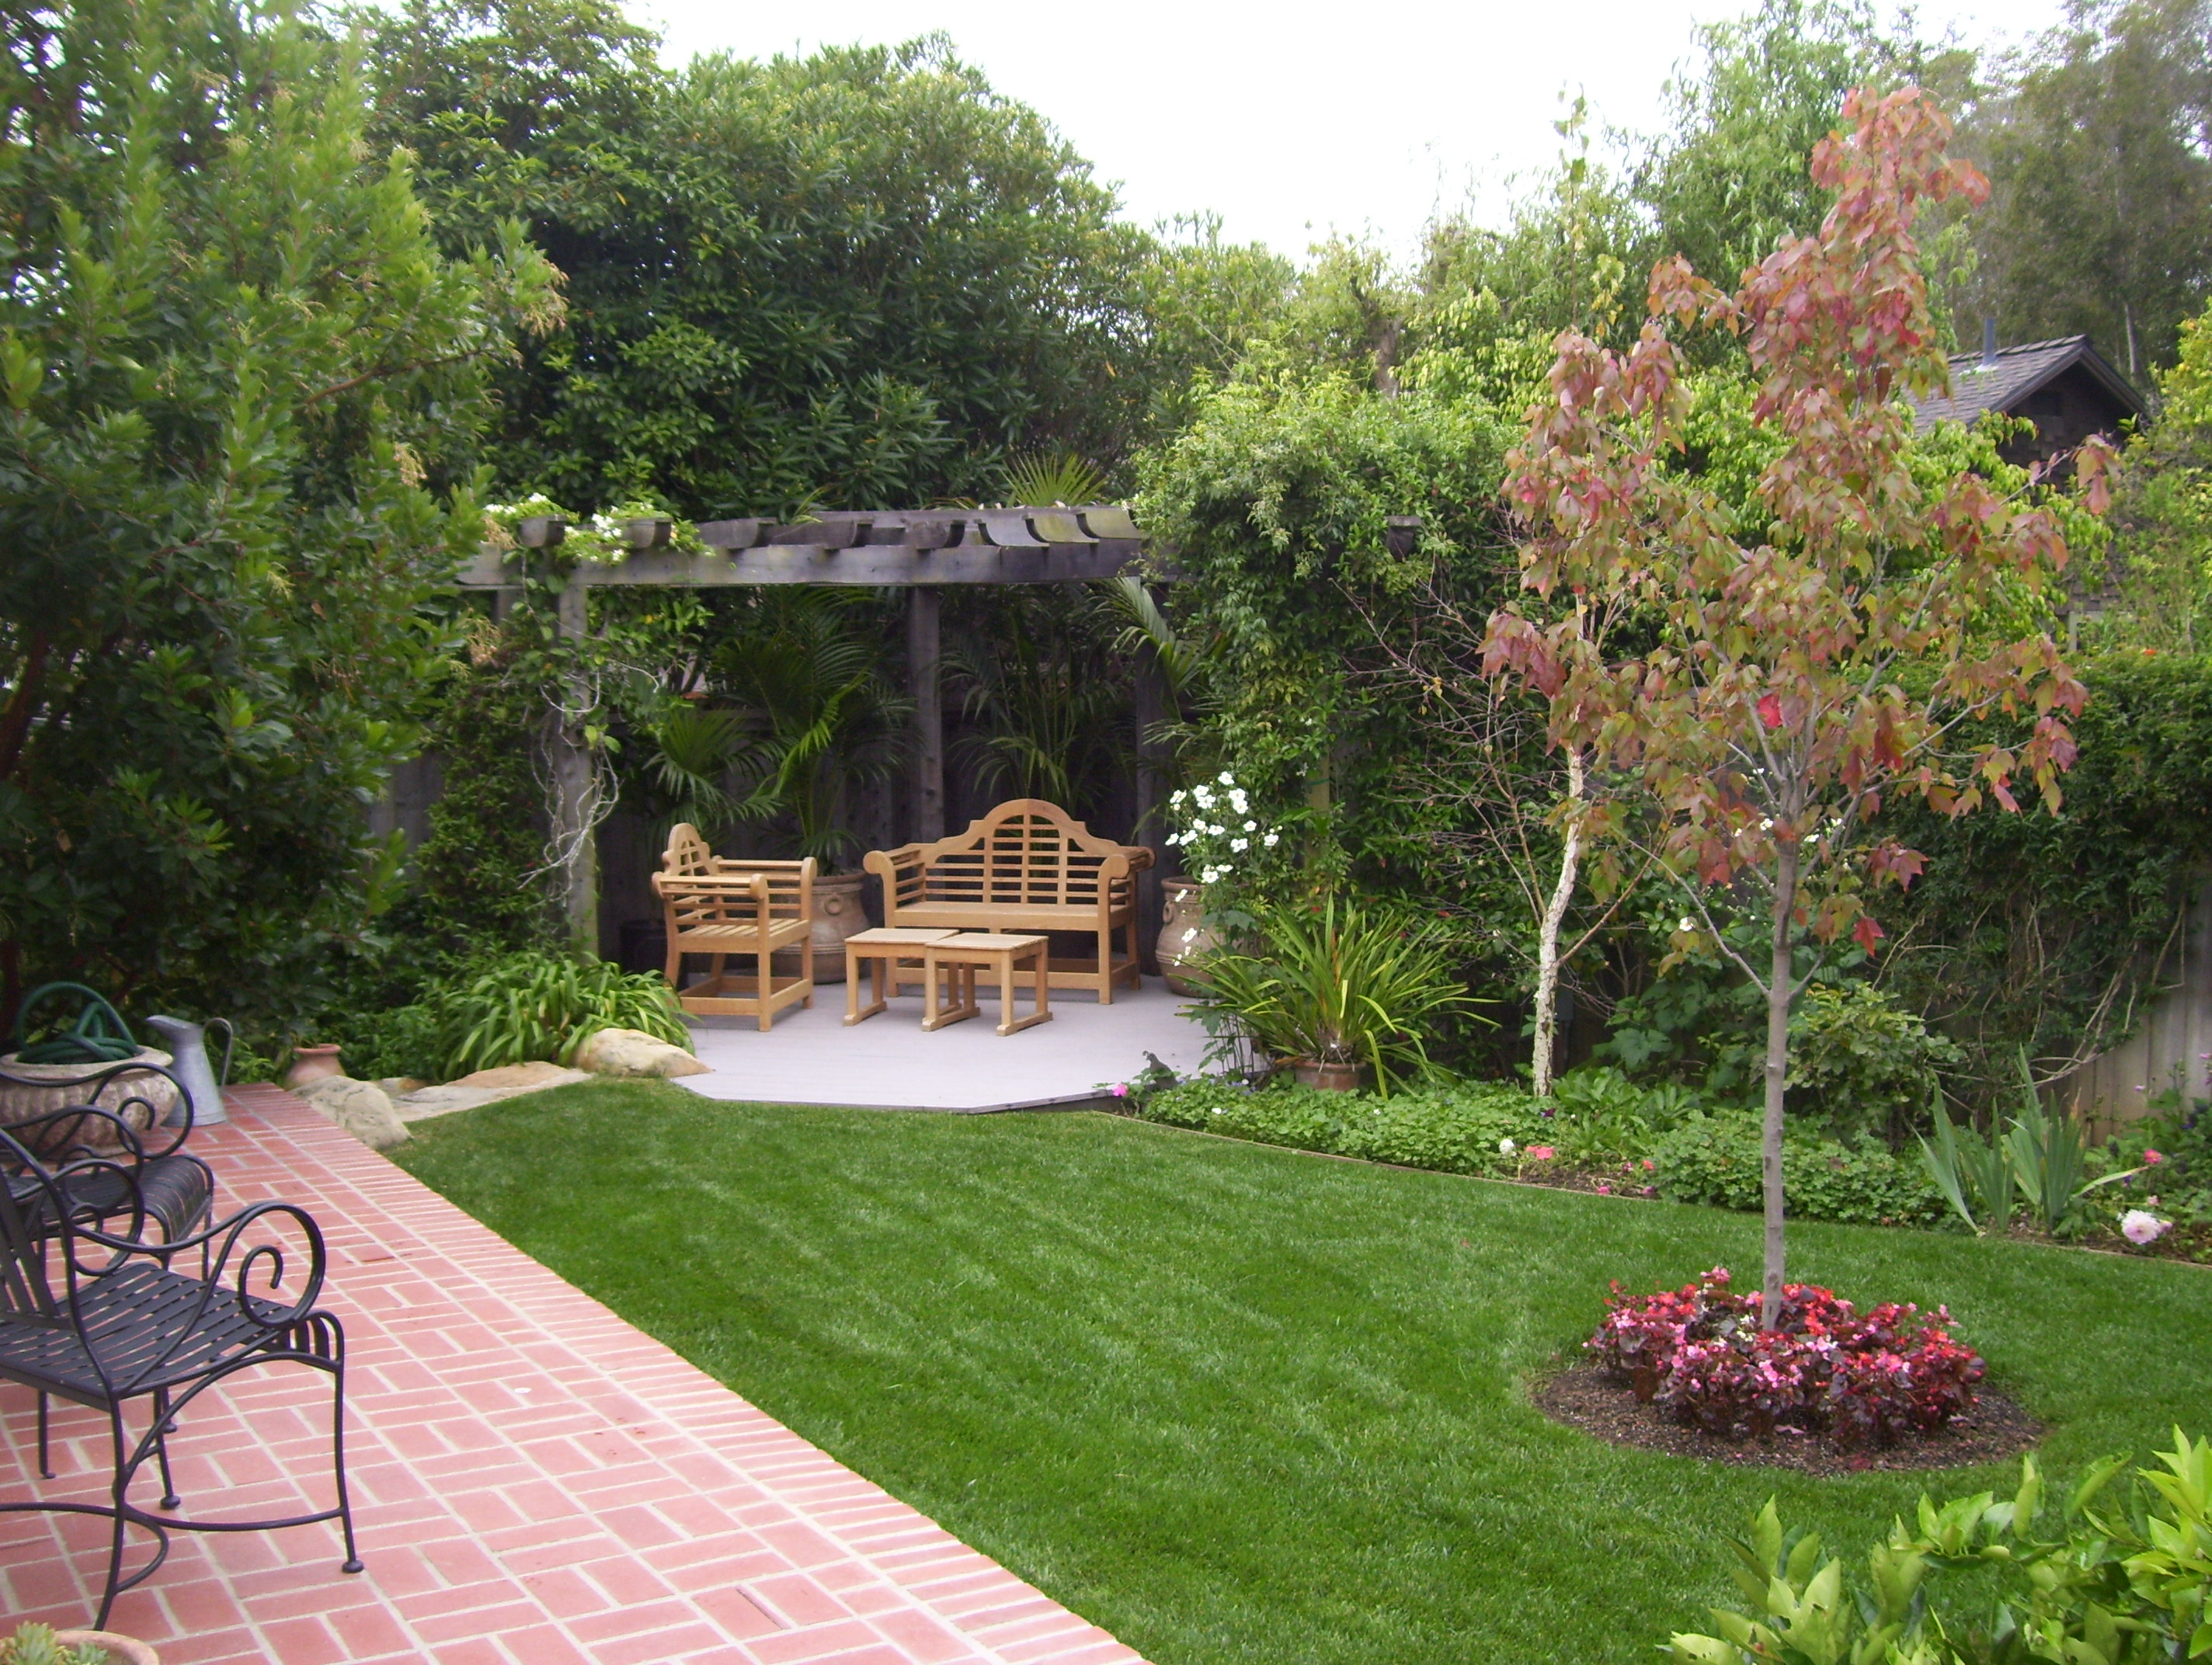 Backyard landscaping ideas santa barbara down to earth for Patio landscaping ideas